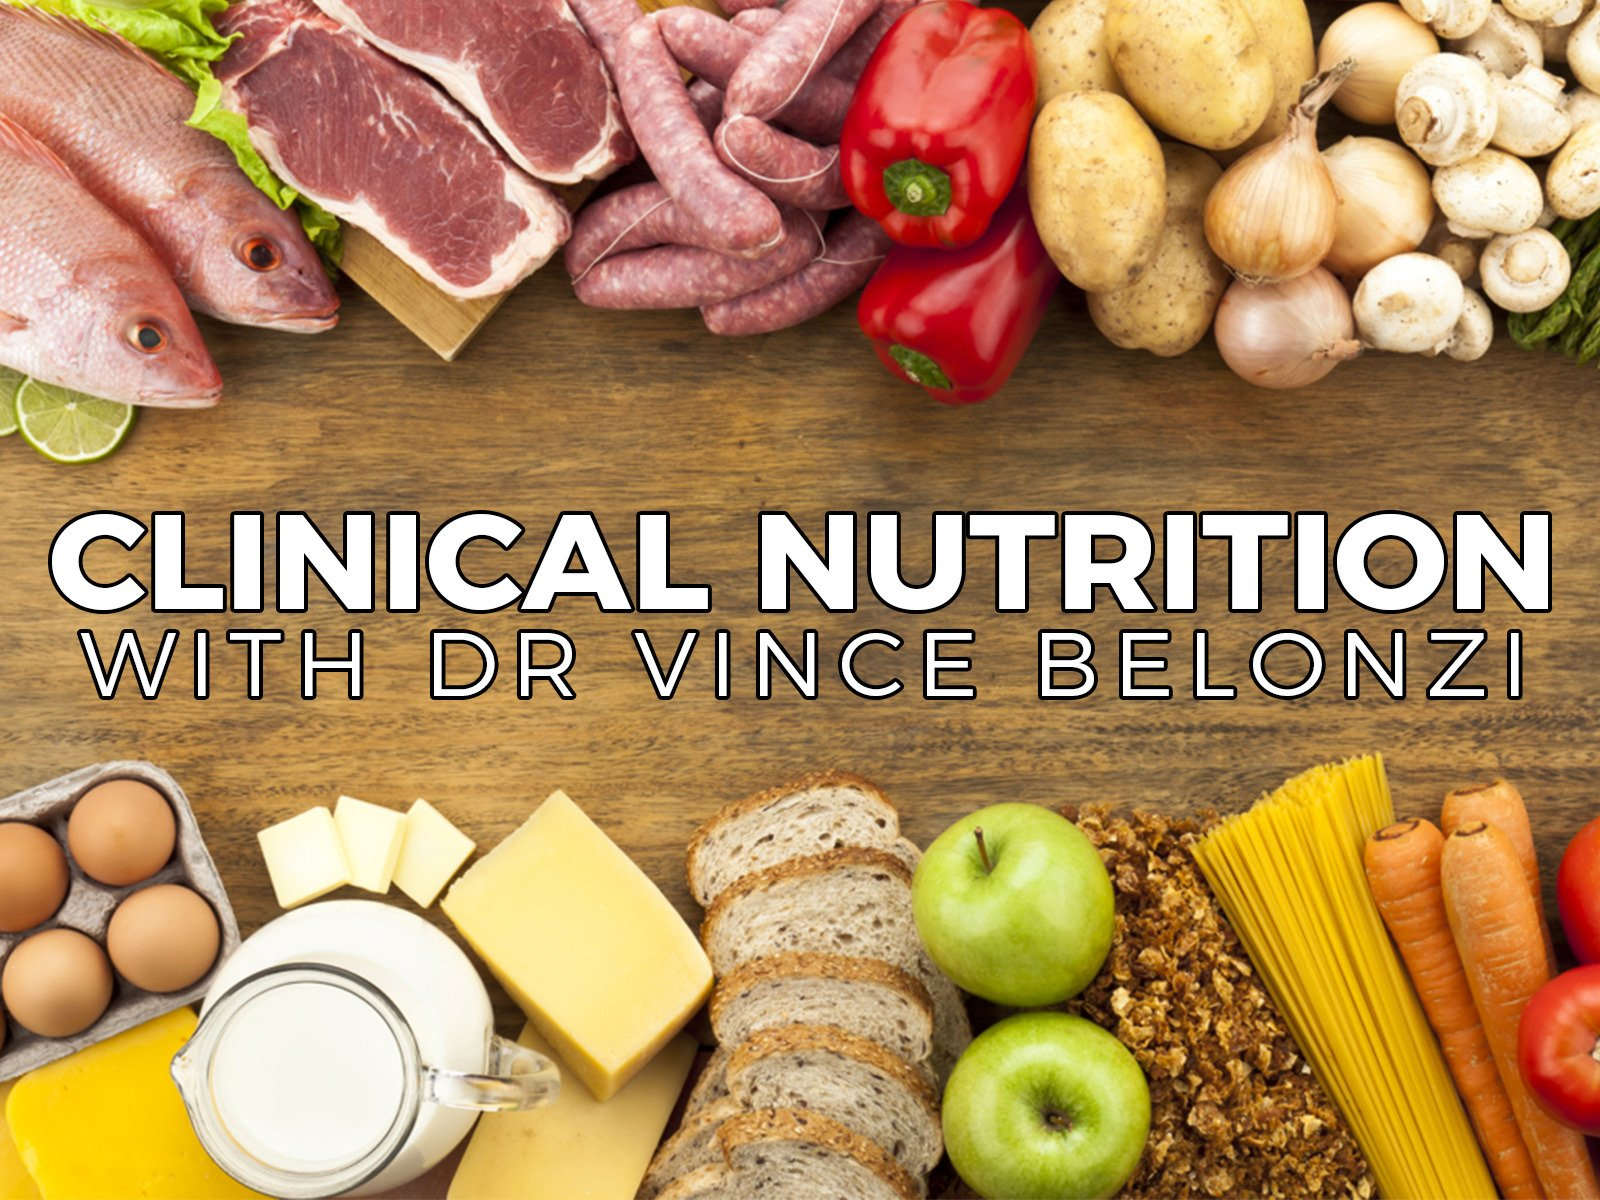 Clinical Nutrition With Dr Vince Belonzi - Season 1